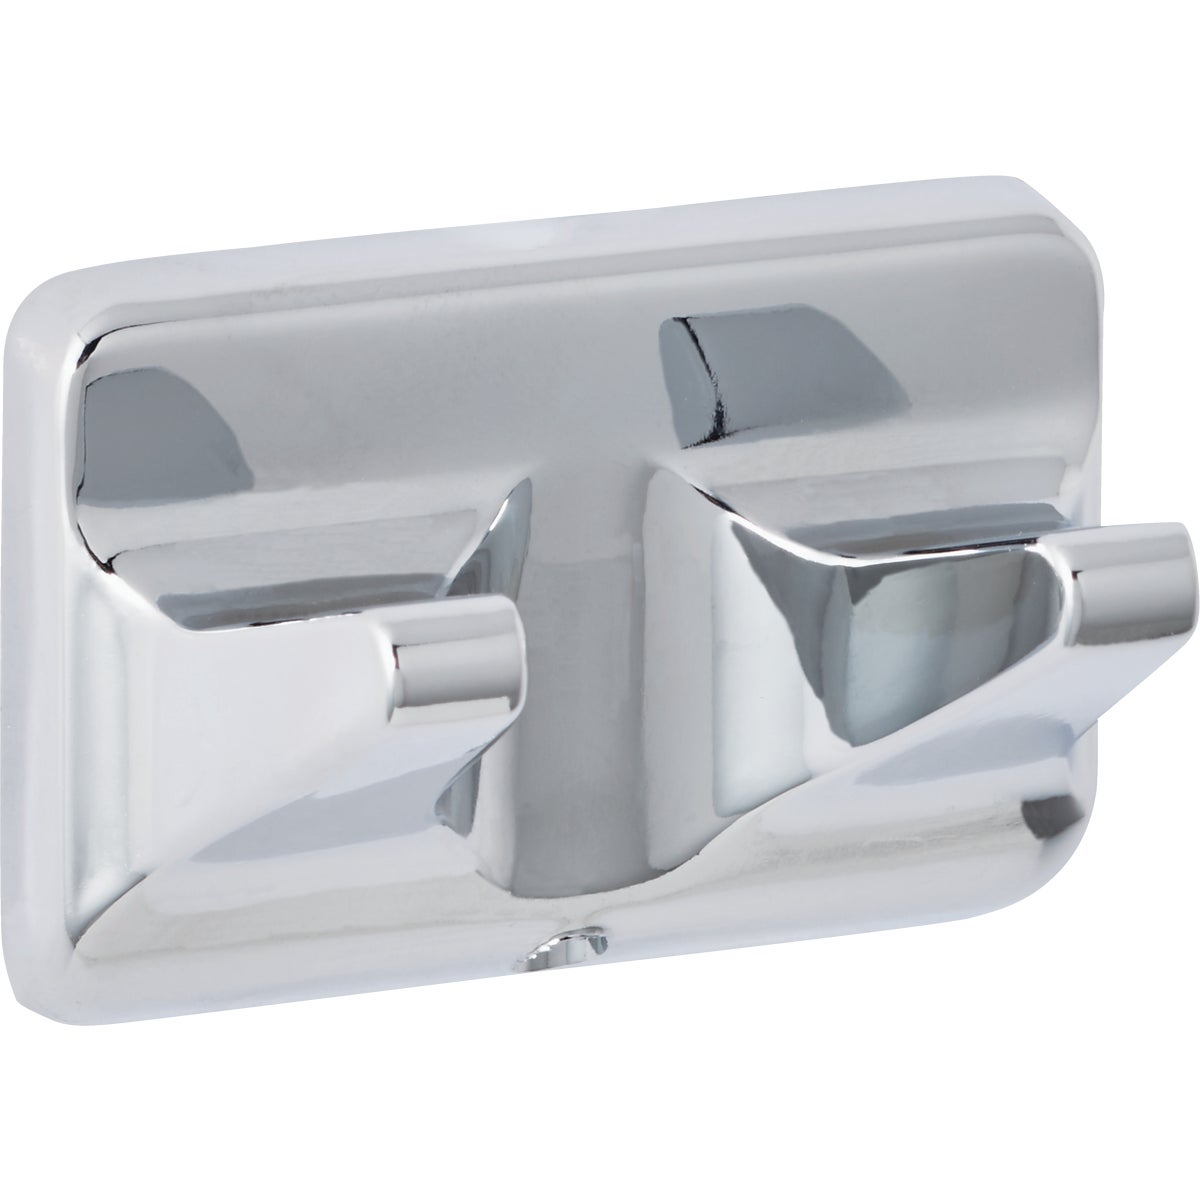 CHROME DOUBLE ROBE HOOK - 408918 by Do it Best